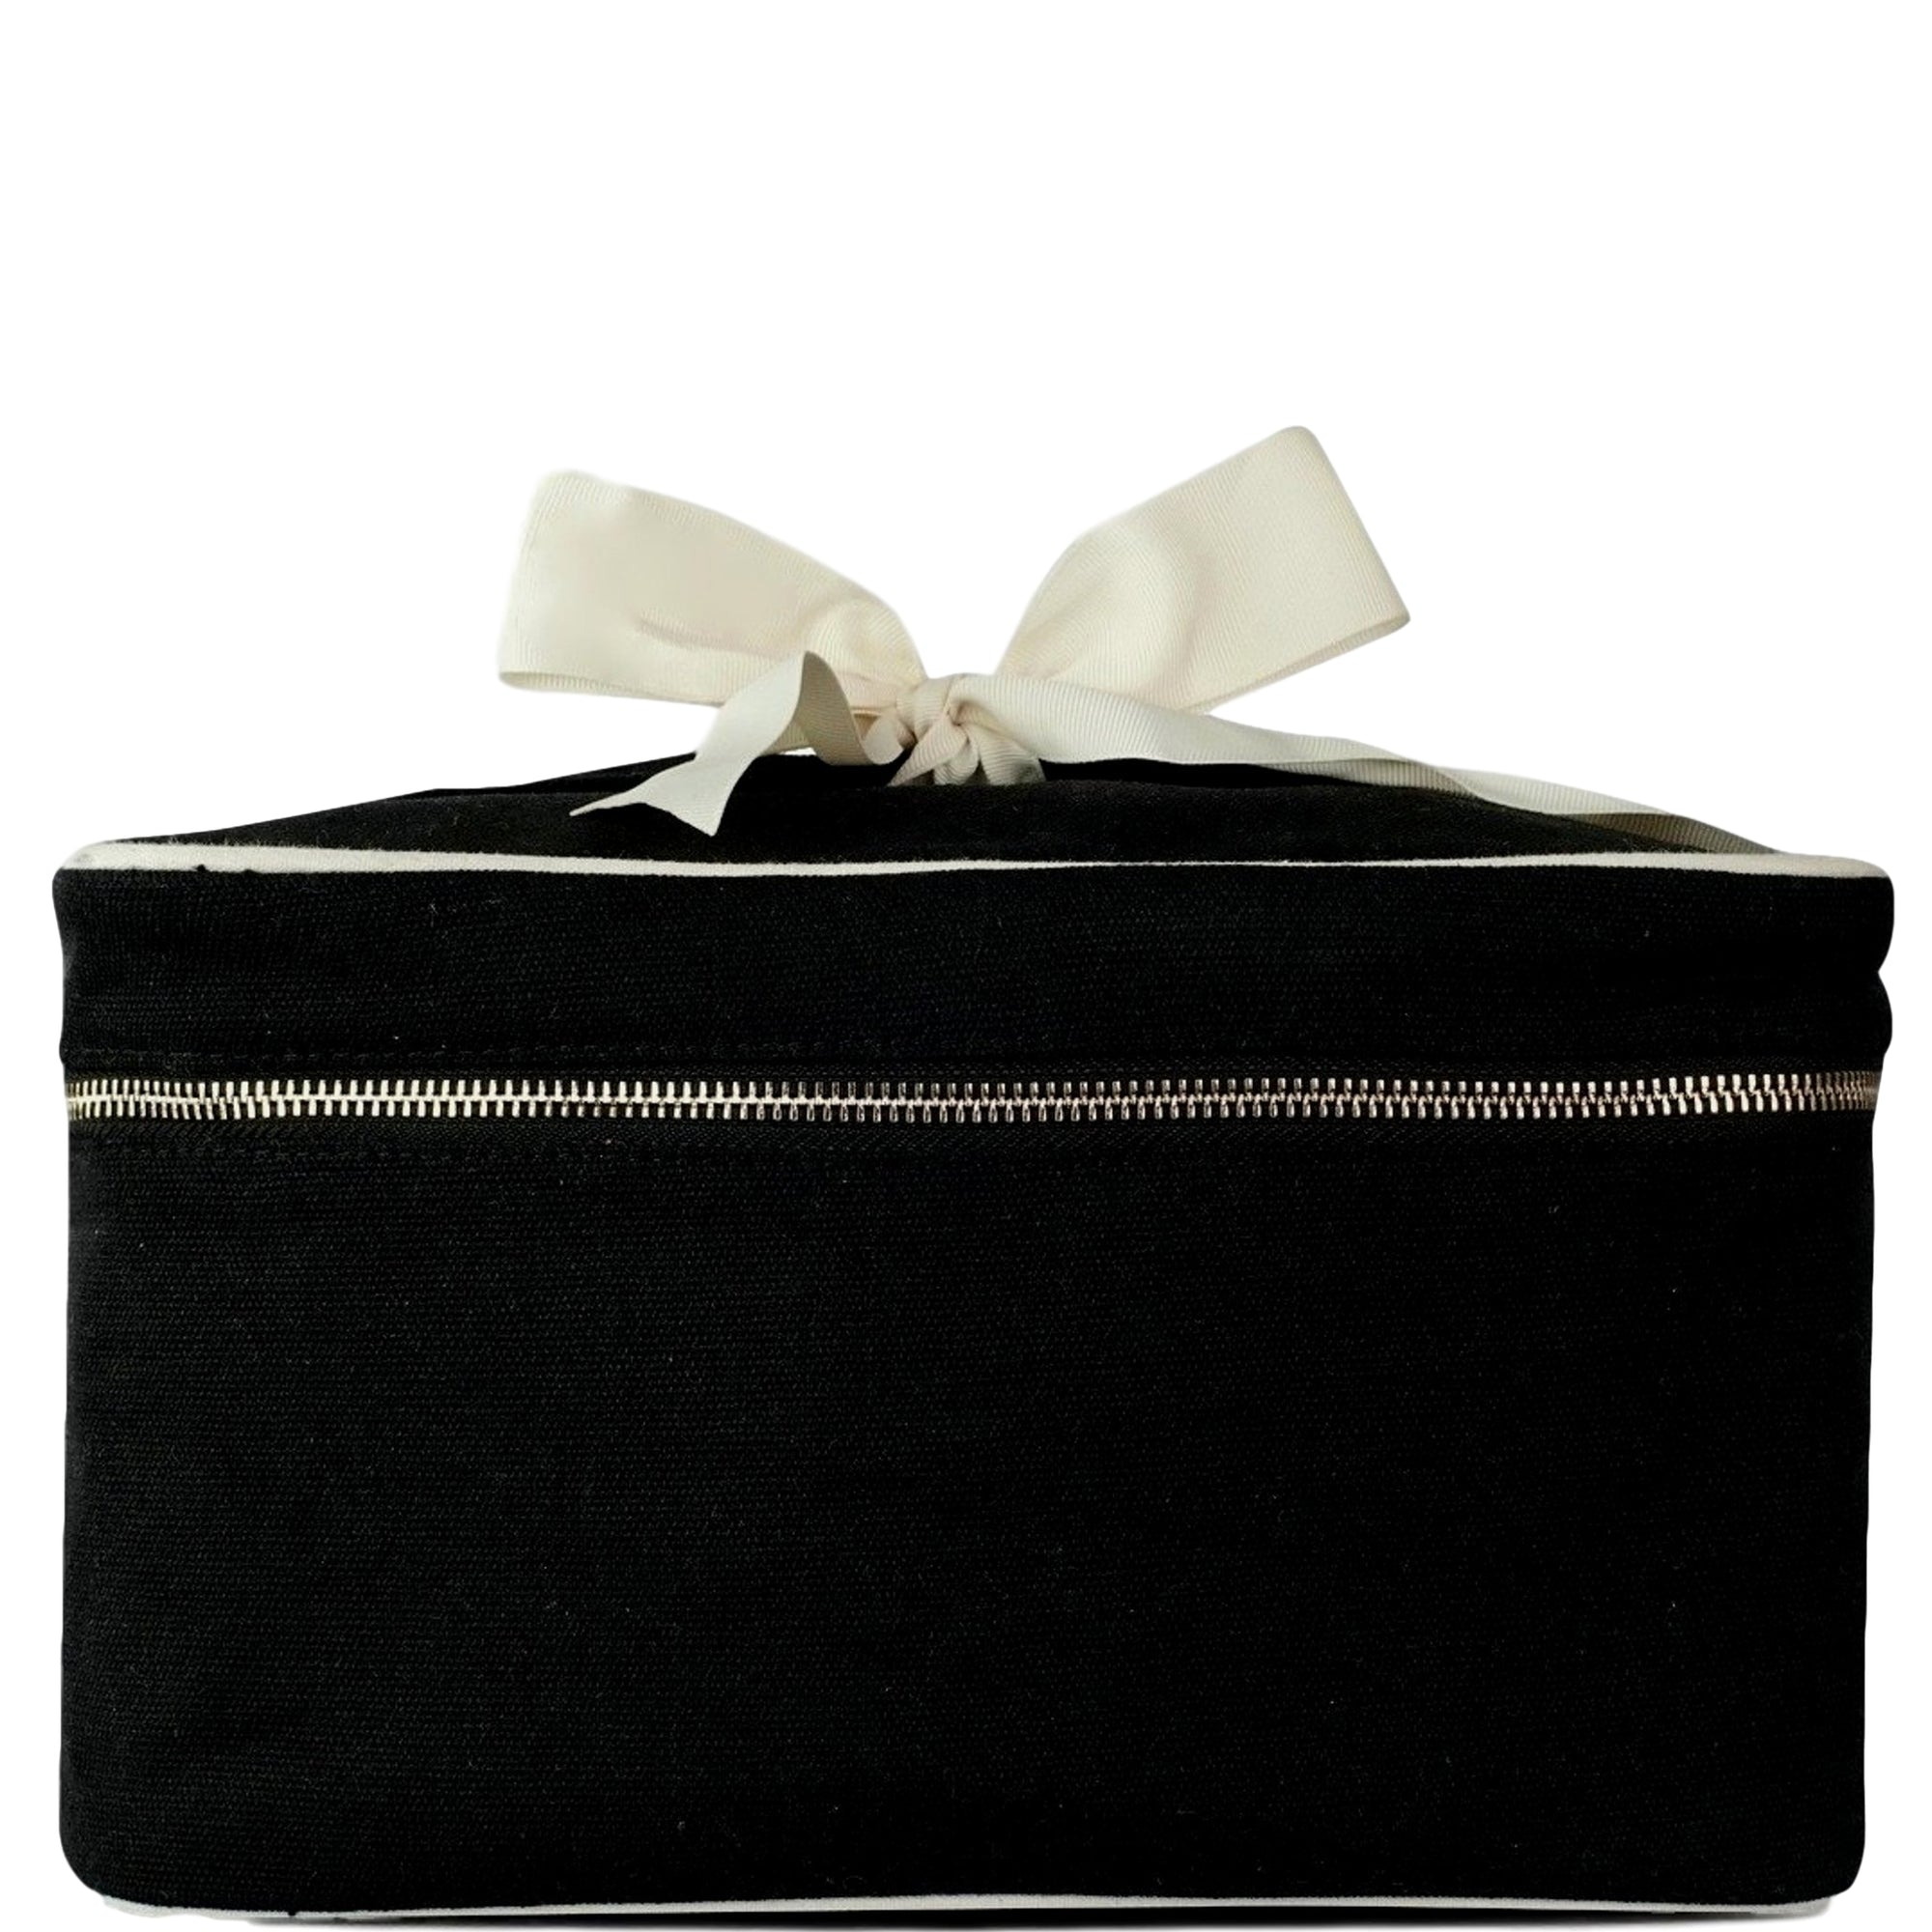 Large black blank beauty box with white details and a white bow attached to the handle.